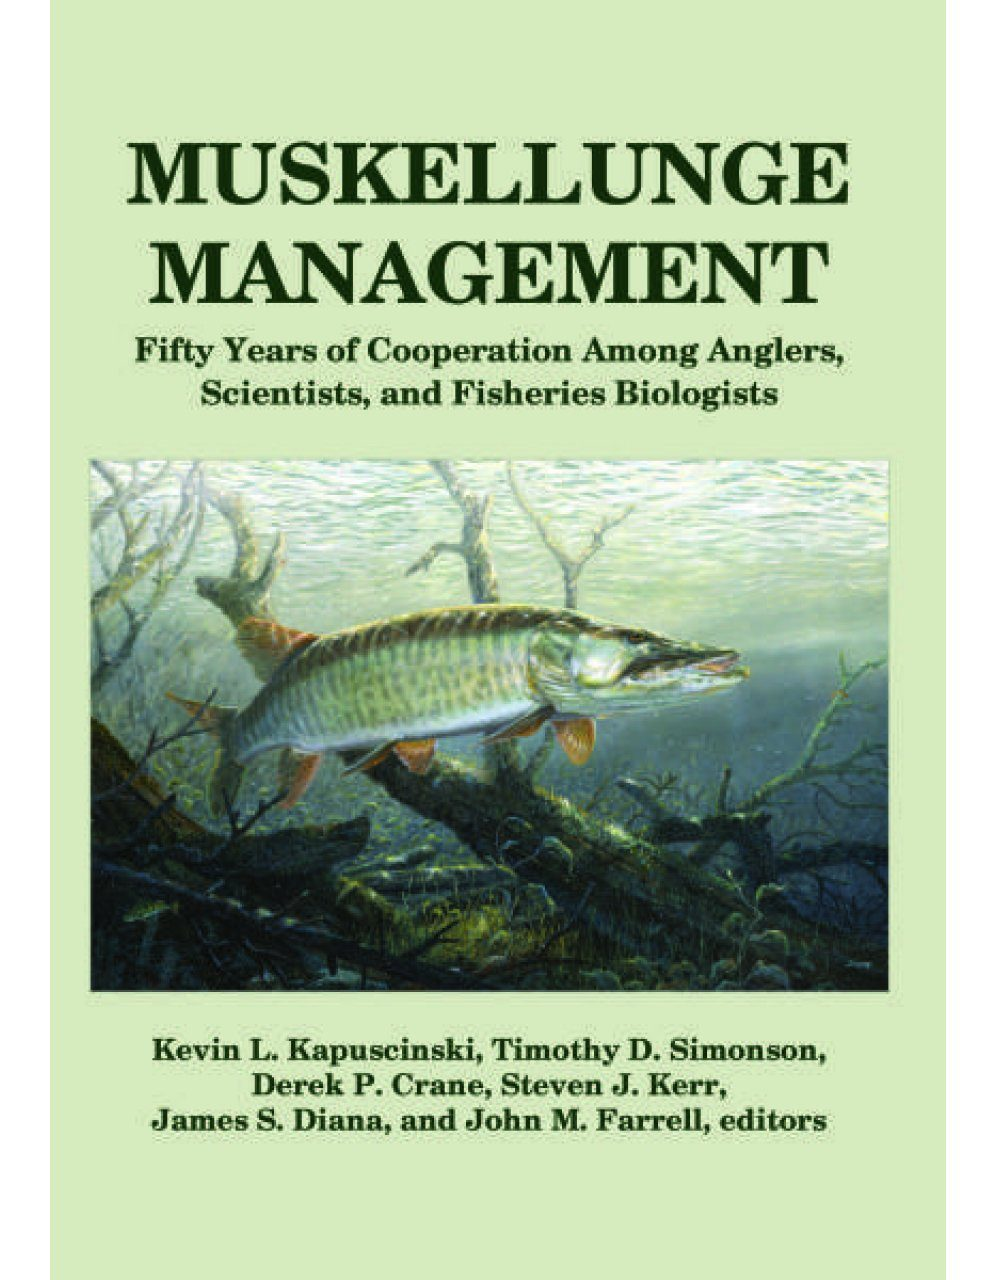 Muskellunge Management